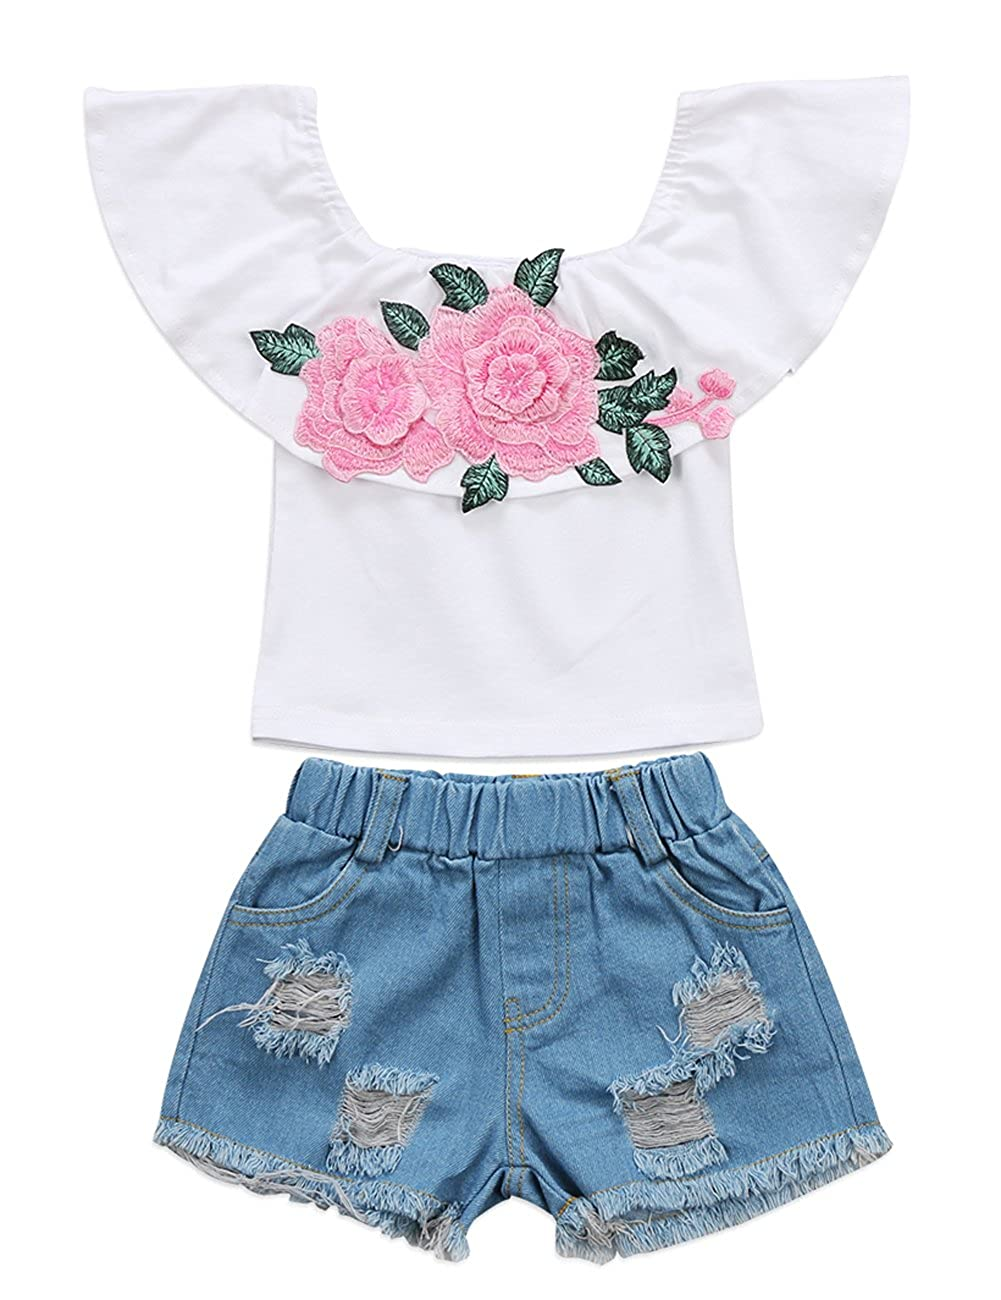 4e41d0f3bb296 Amazon.com: Little Girls Off-Shoulder Rose Embrodidery Applique Ruffle Top  and Denim Shorts Outfit: Clothing